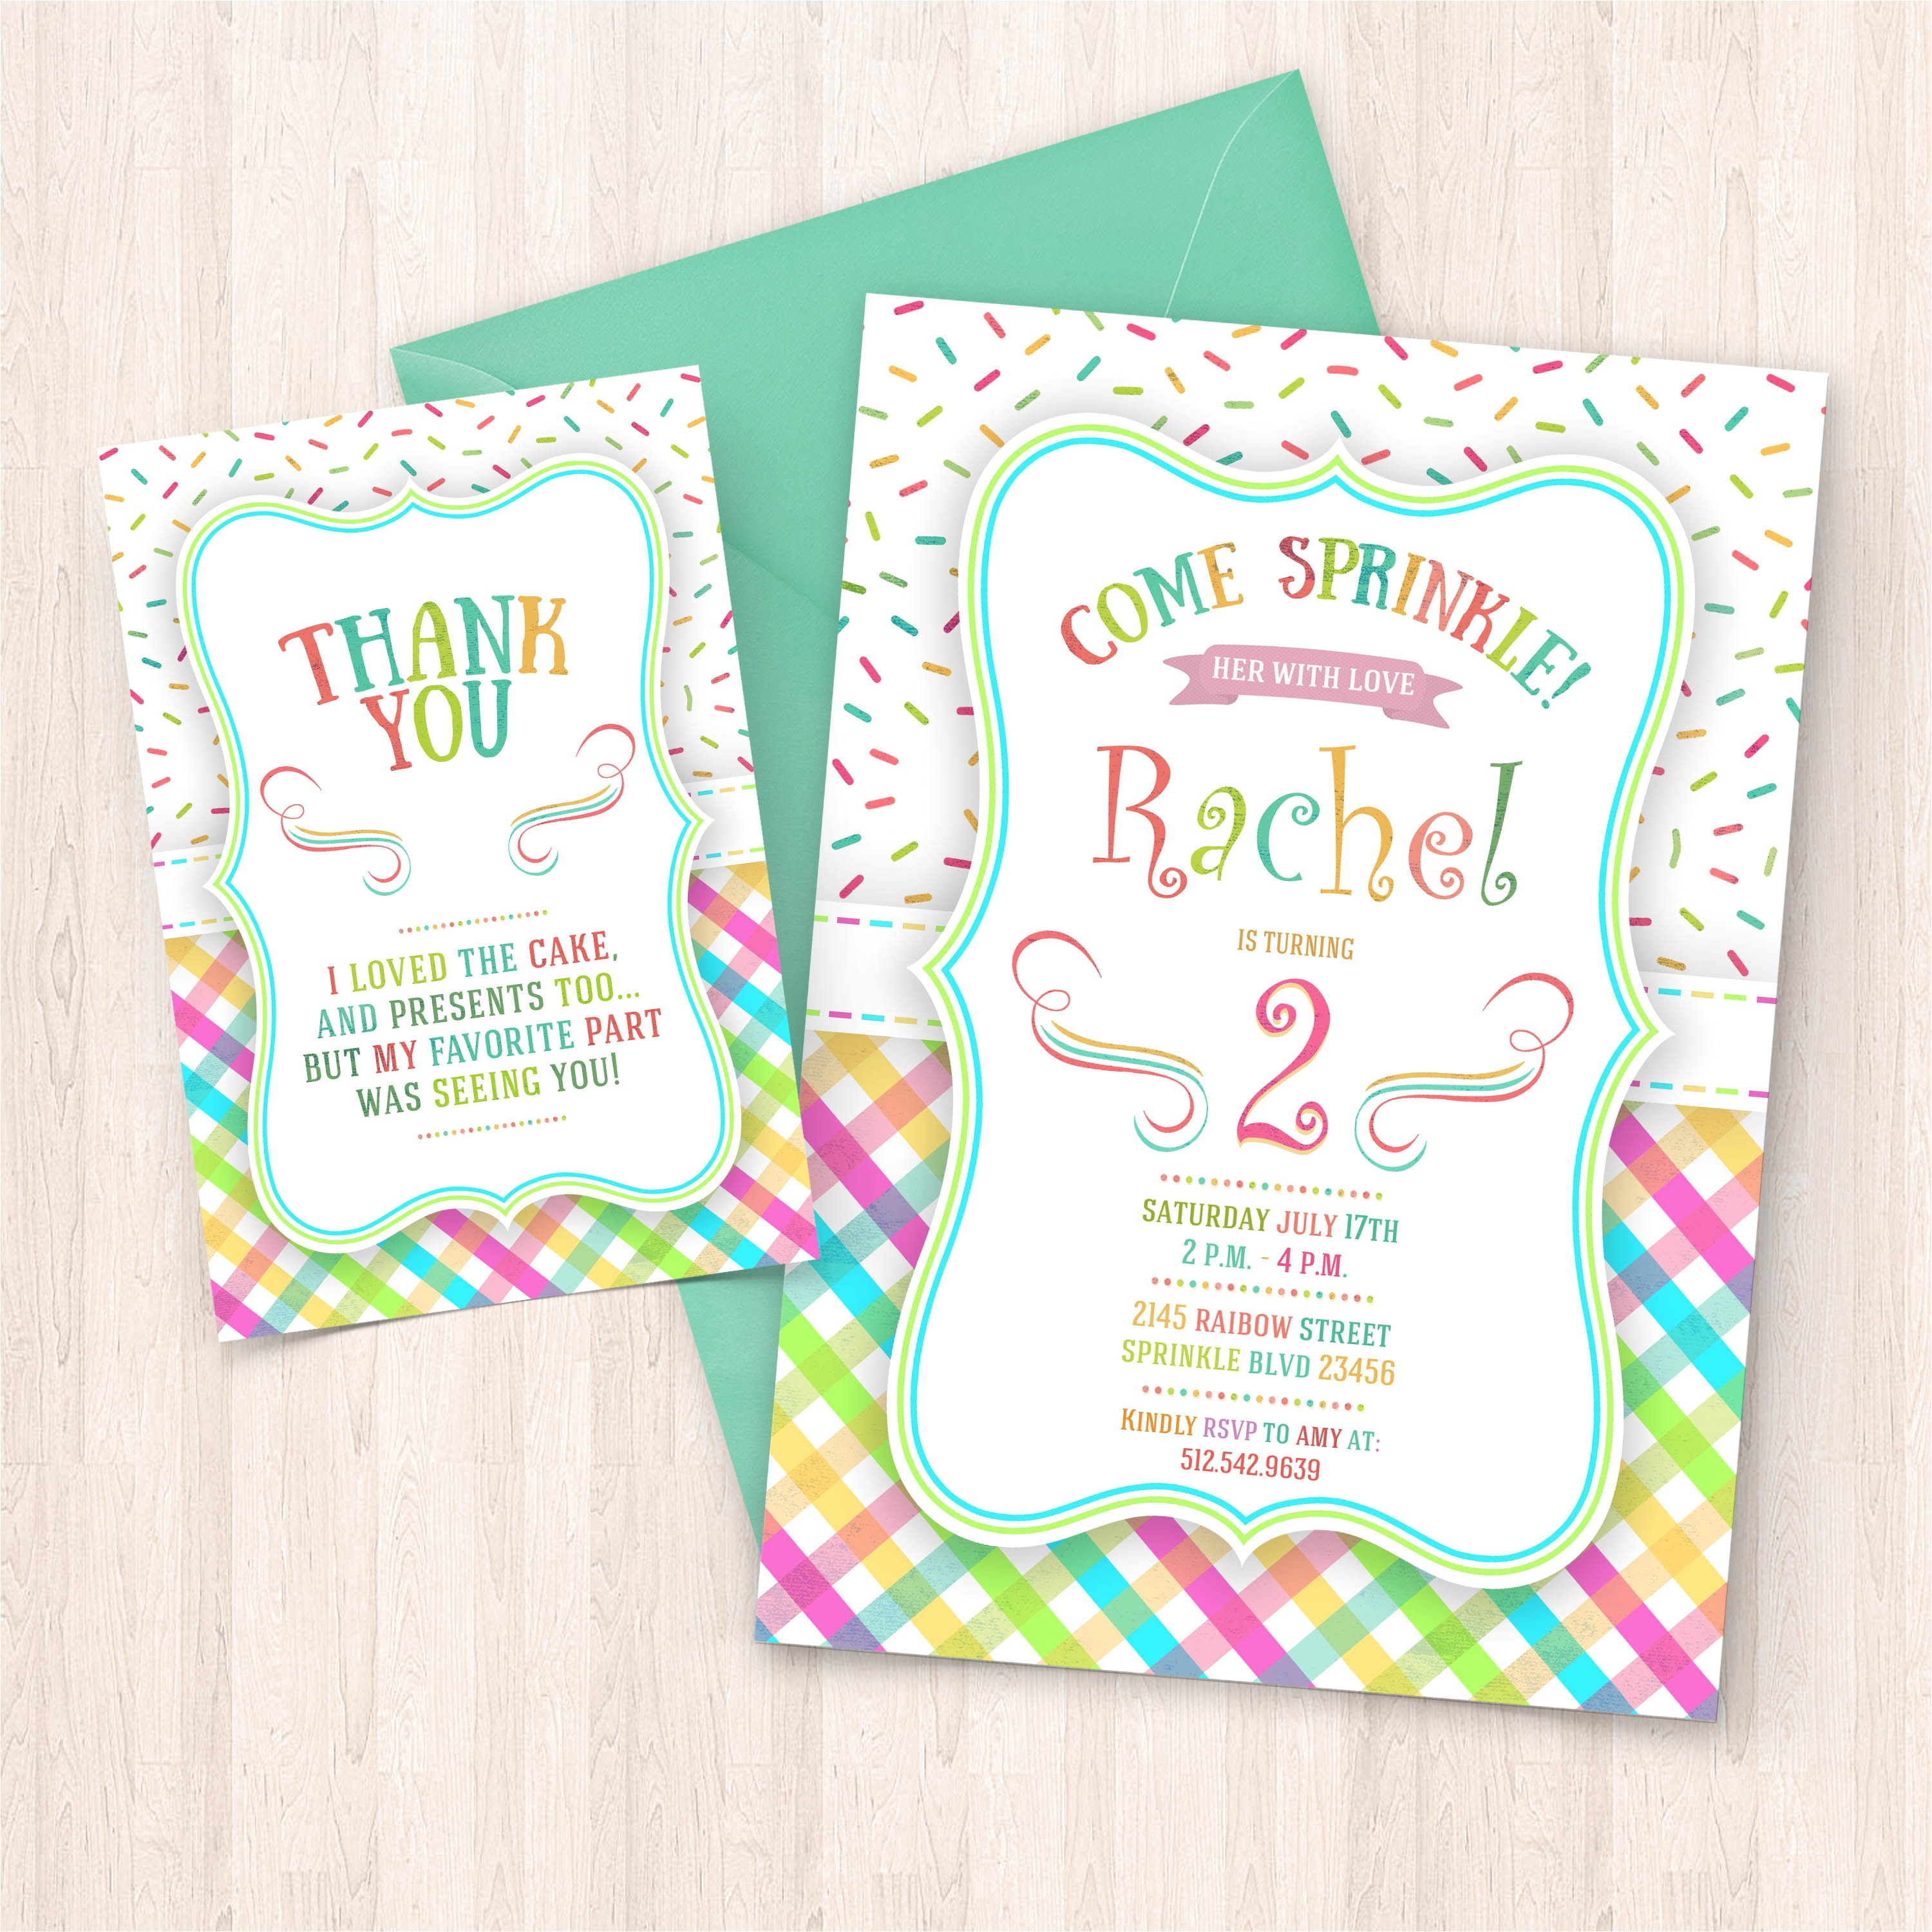 printable sprinkle birthday invitations free thank you cards to print at home